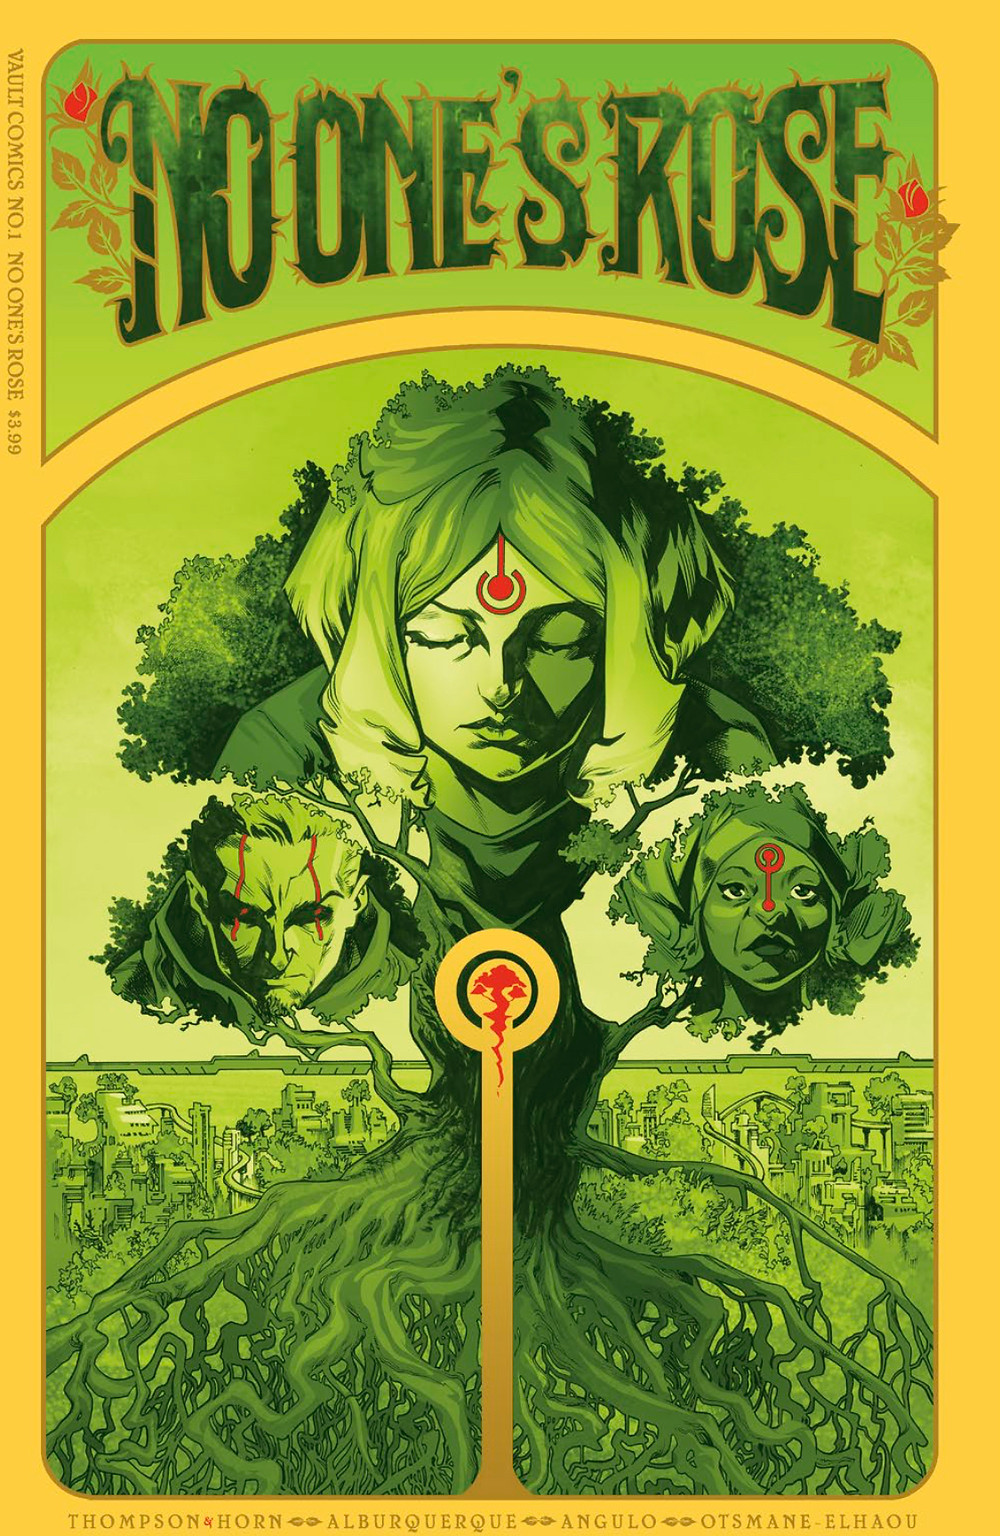 No One's Rose, Vol.1, cover, Vault Comics, Thompson/Horn/Alburquerque